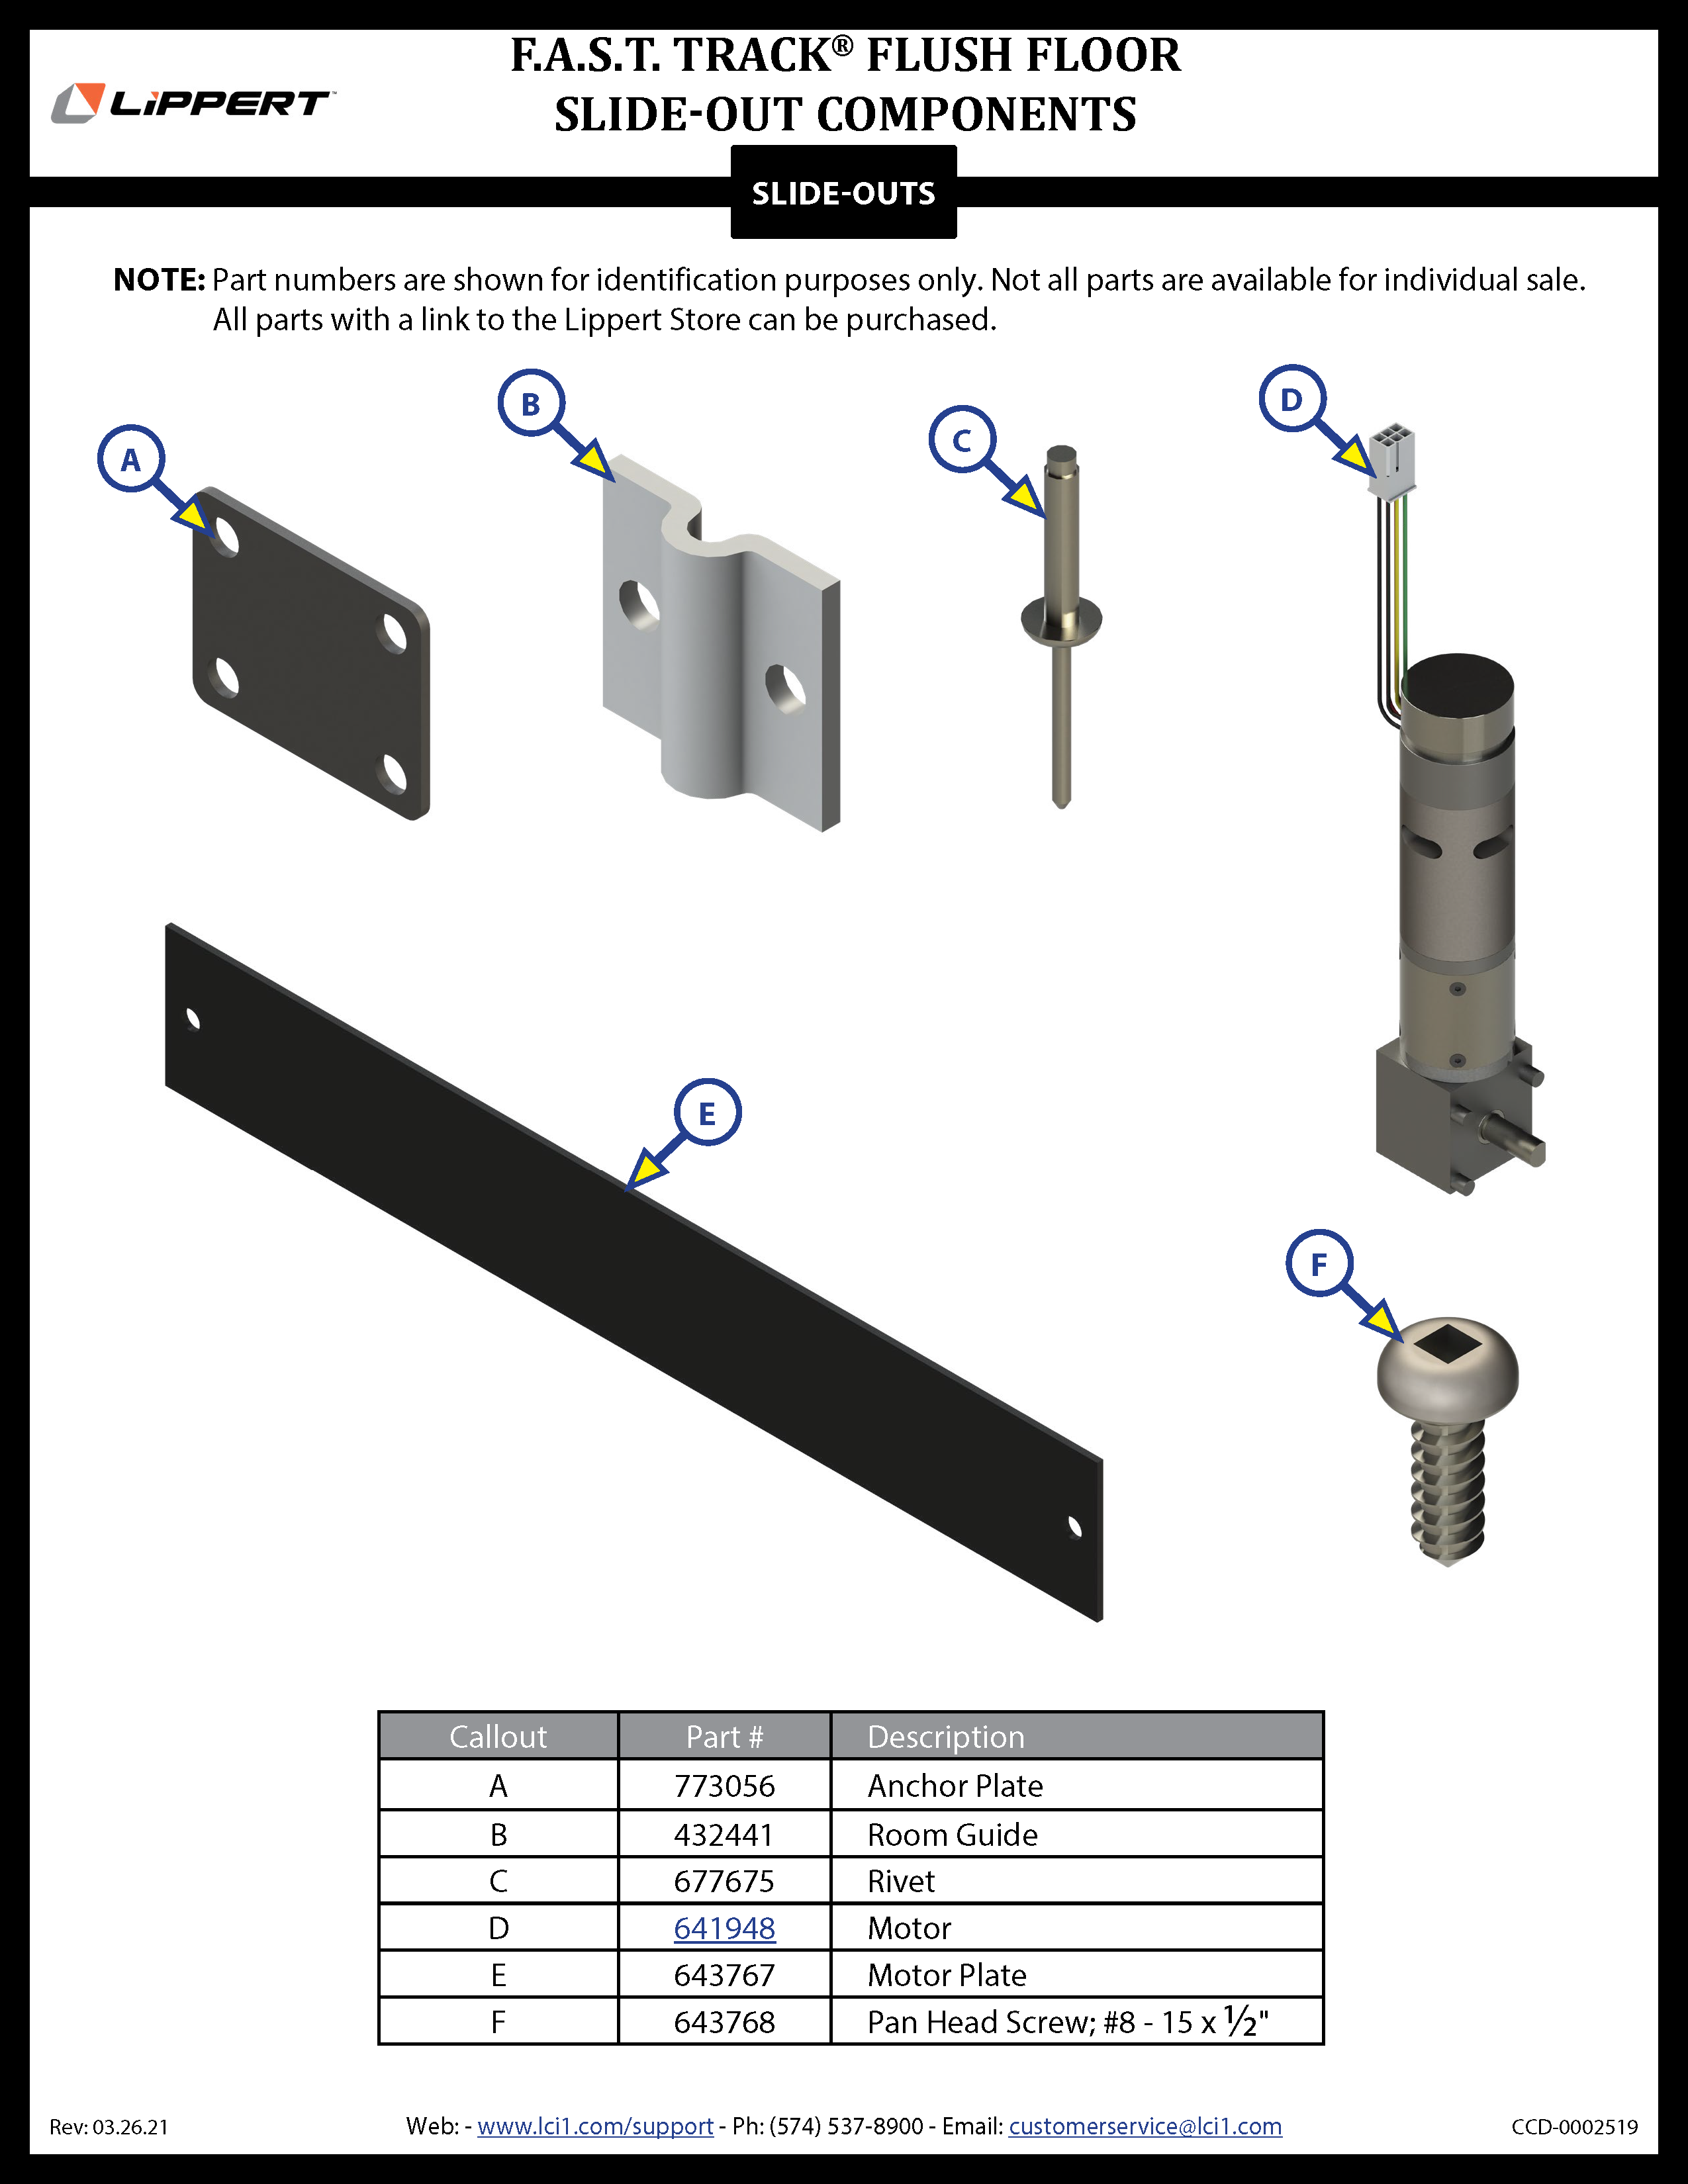 F.A.S.T. Track®  Flush Floor Slide-Out Components